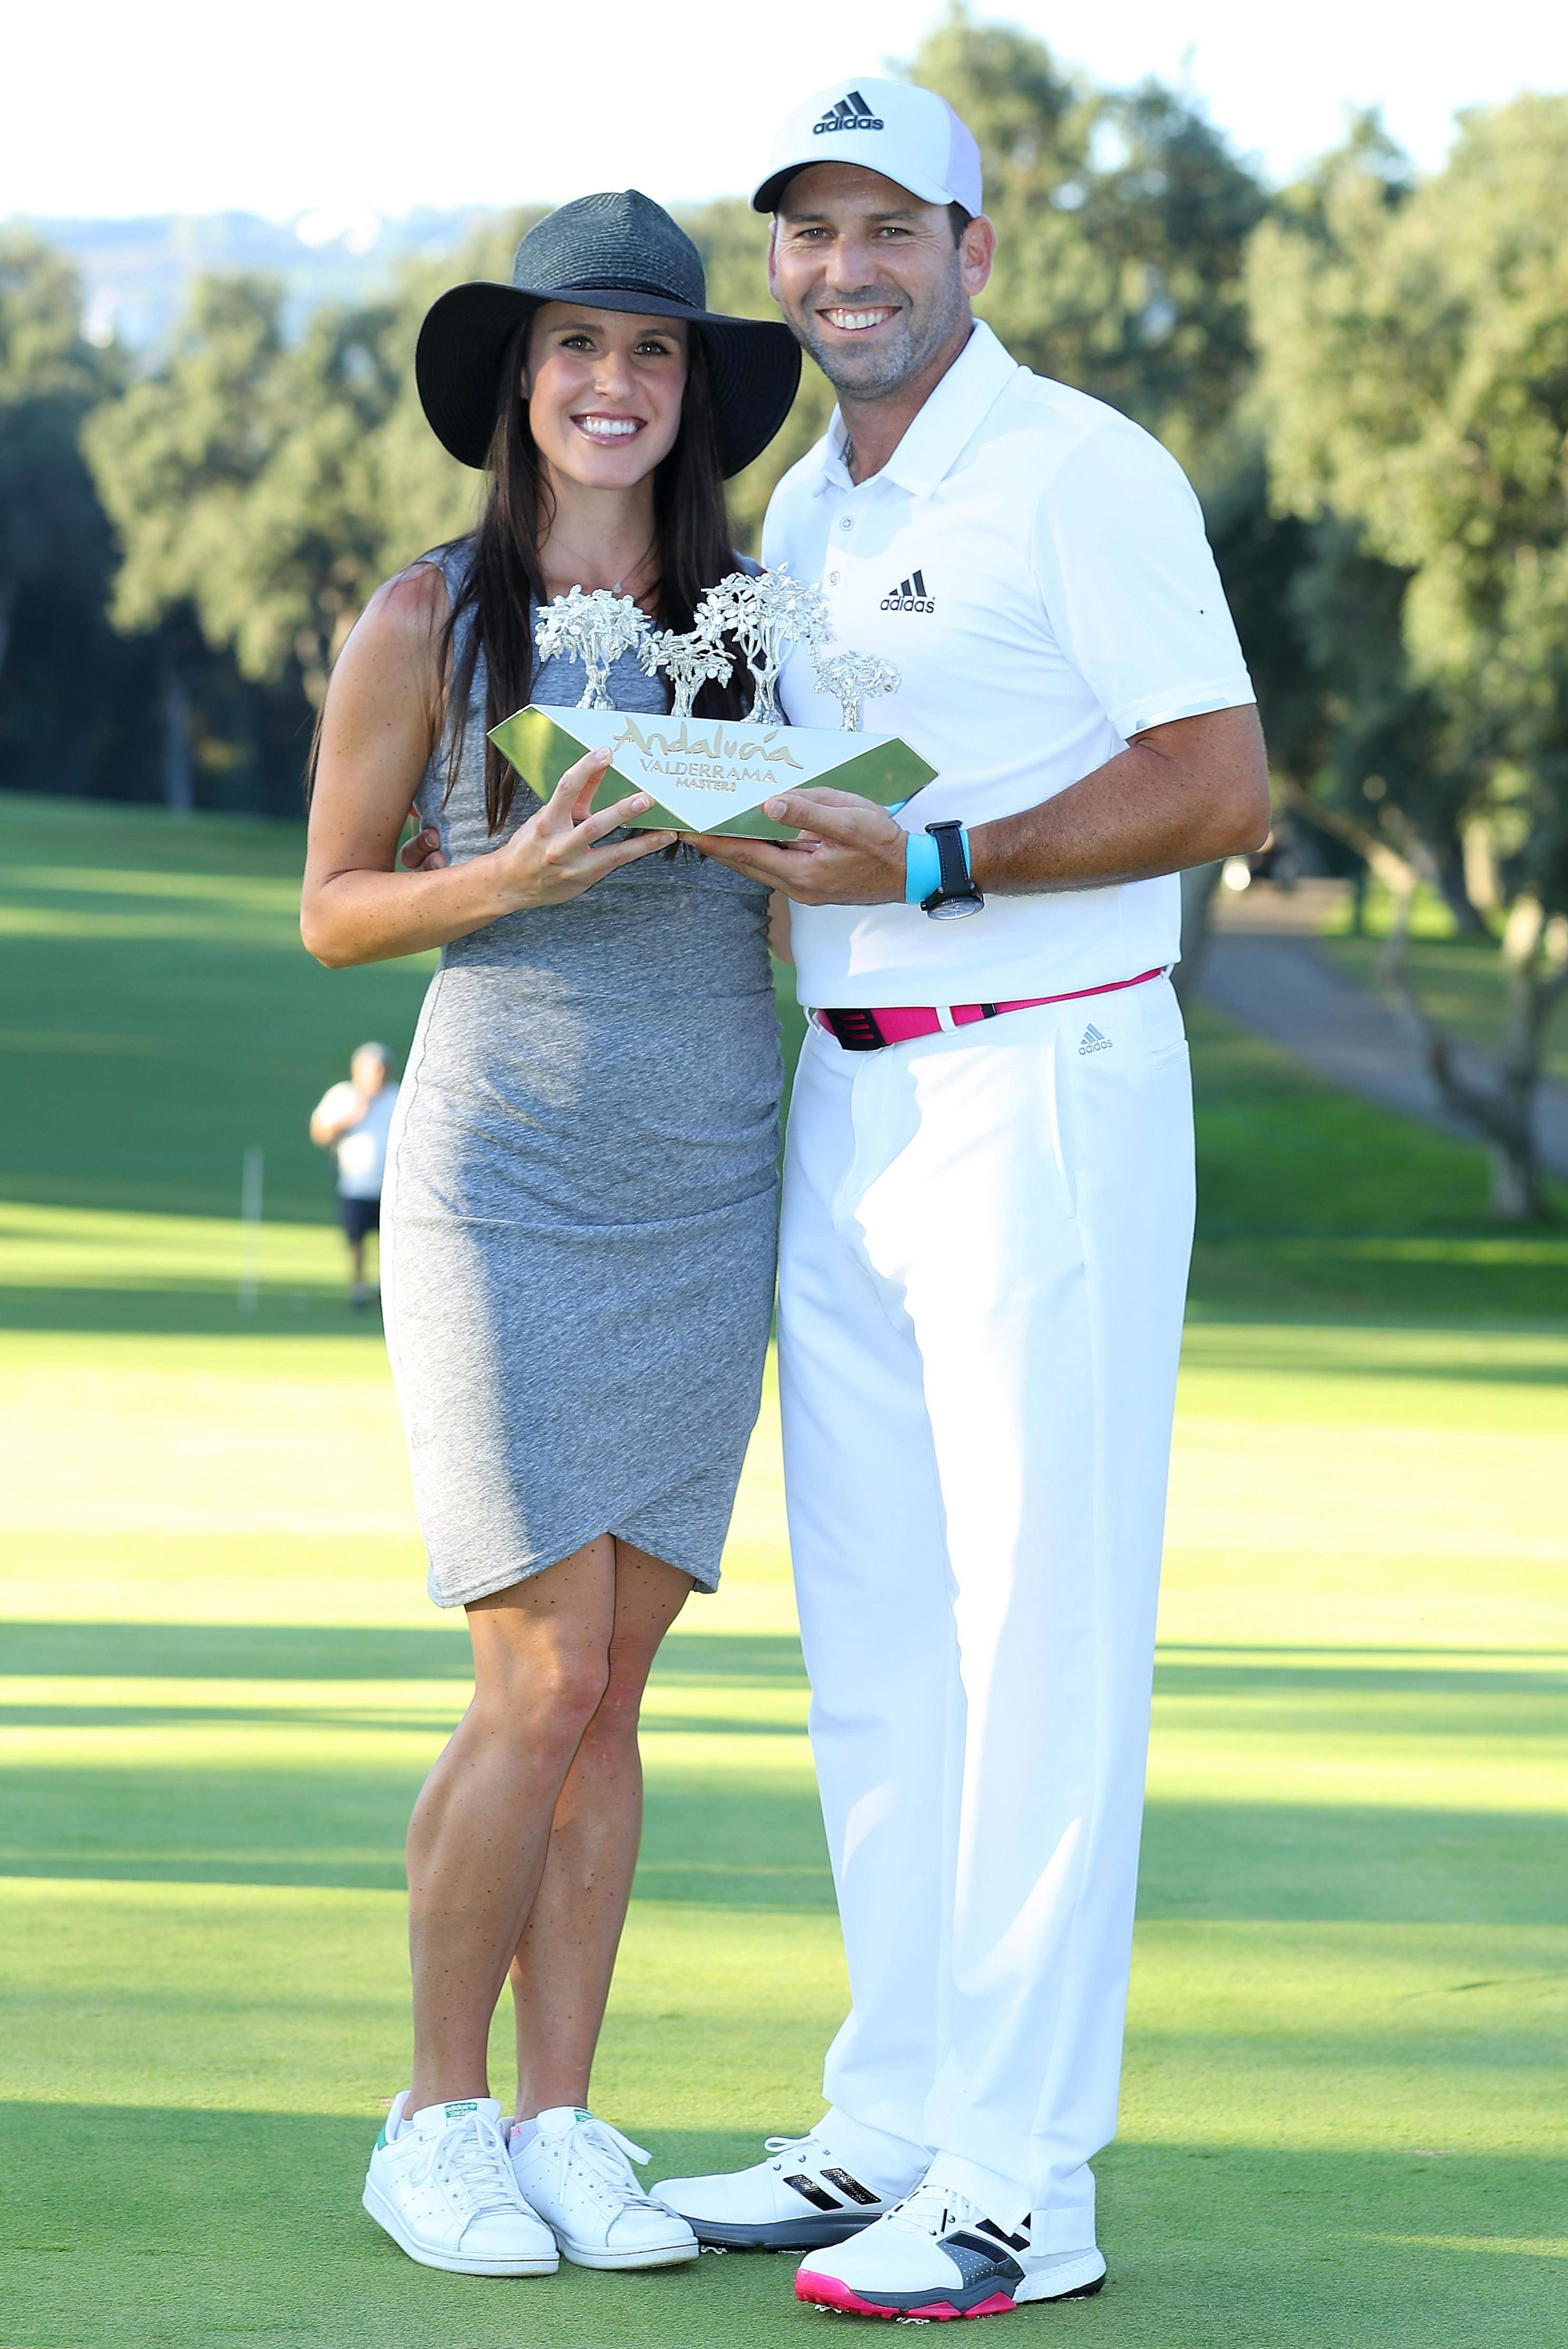 Sergio Garcia says his daughter is due to appear ahead of schedule